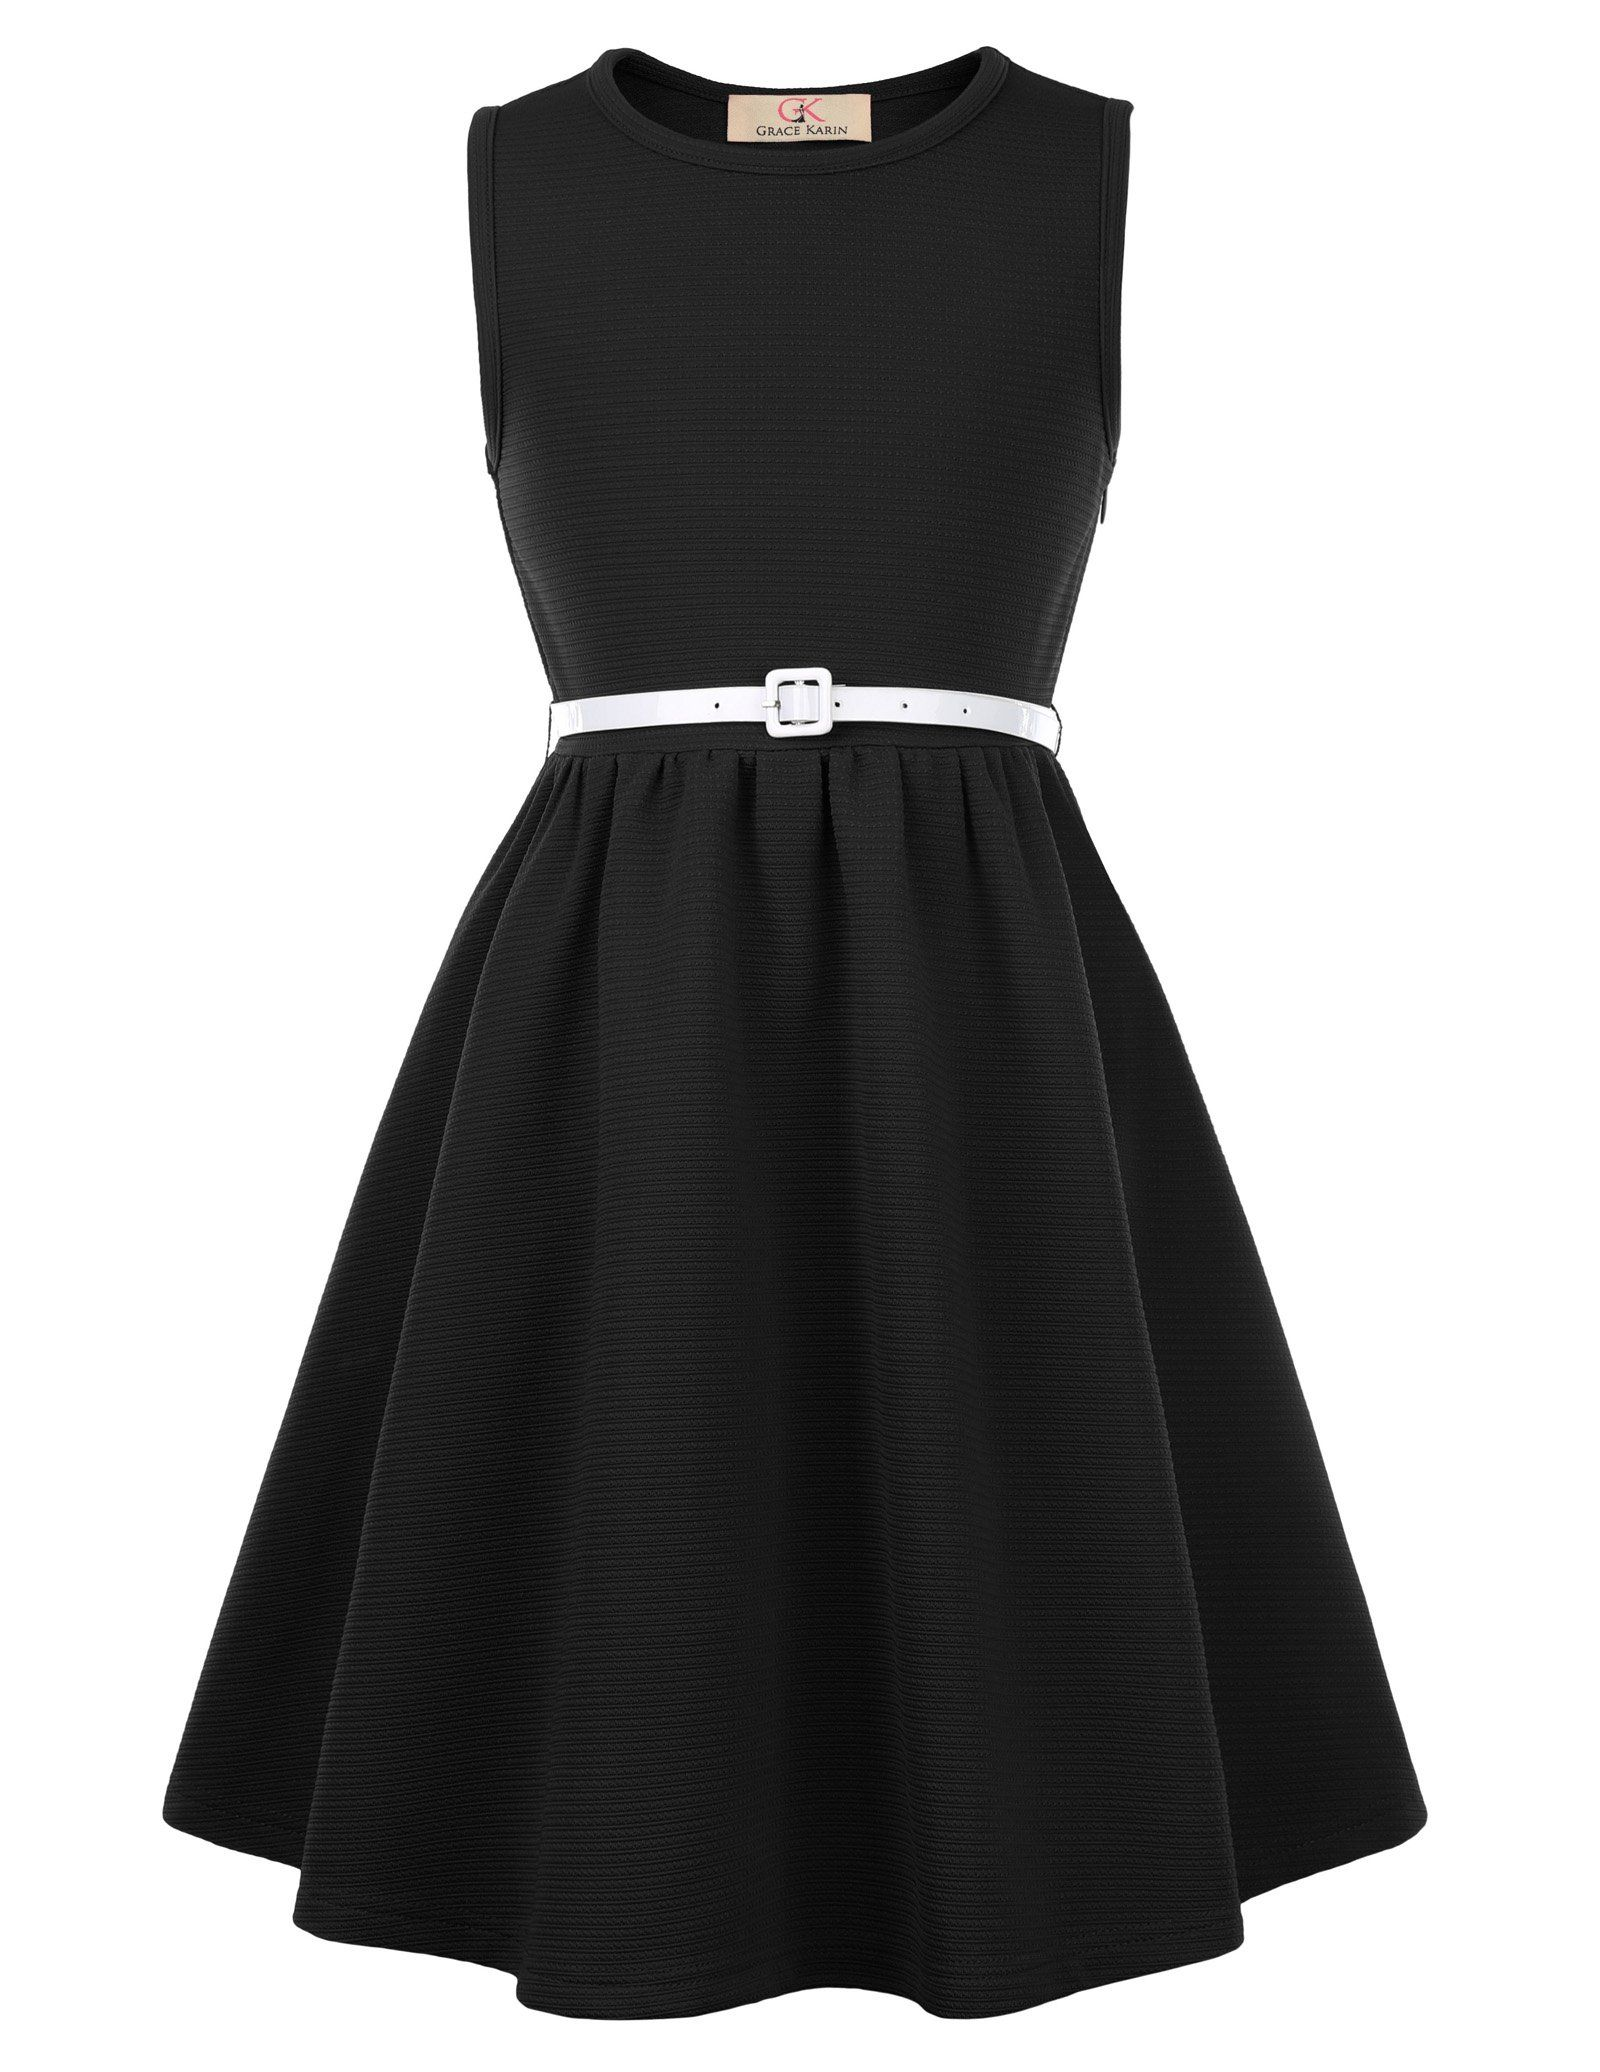 Girls casual swing dresses for toddler yrs cl dry clean and